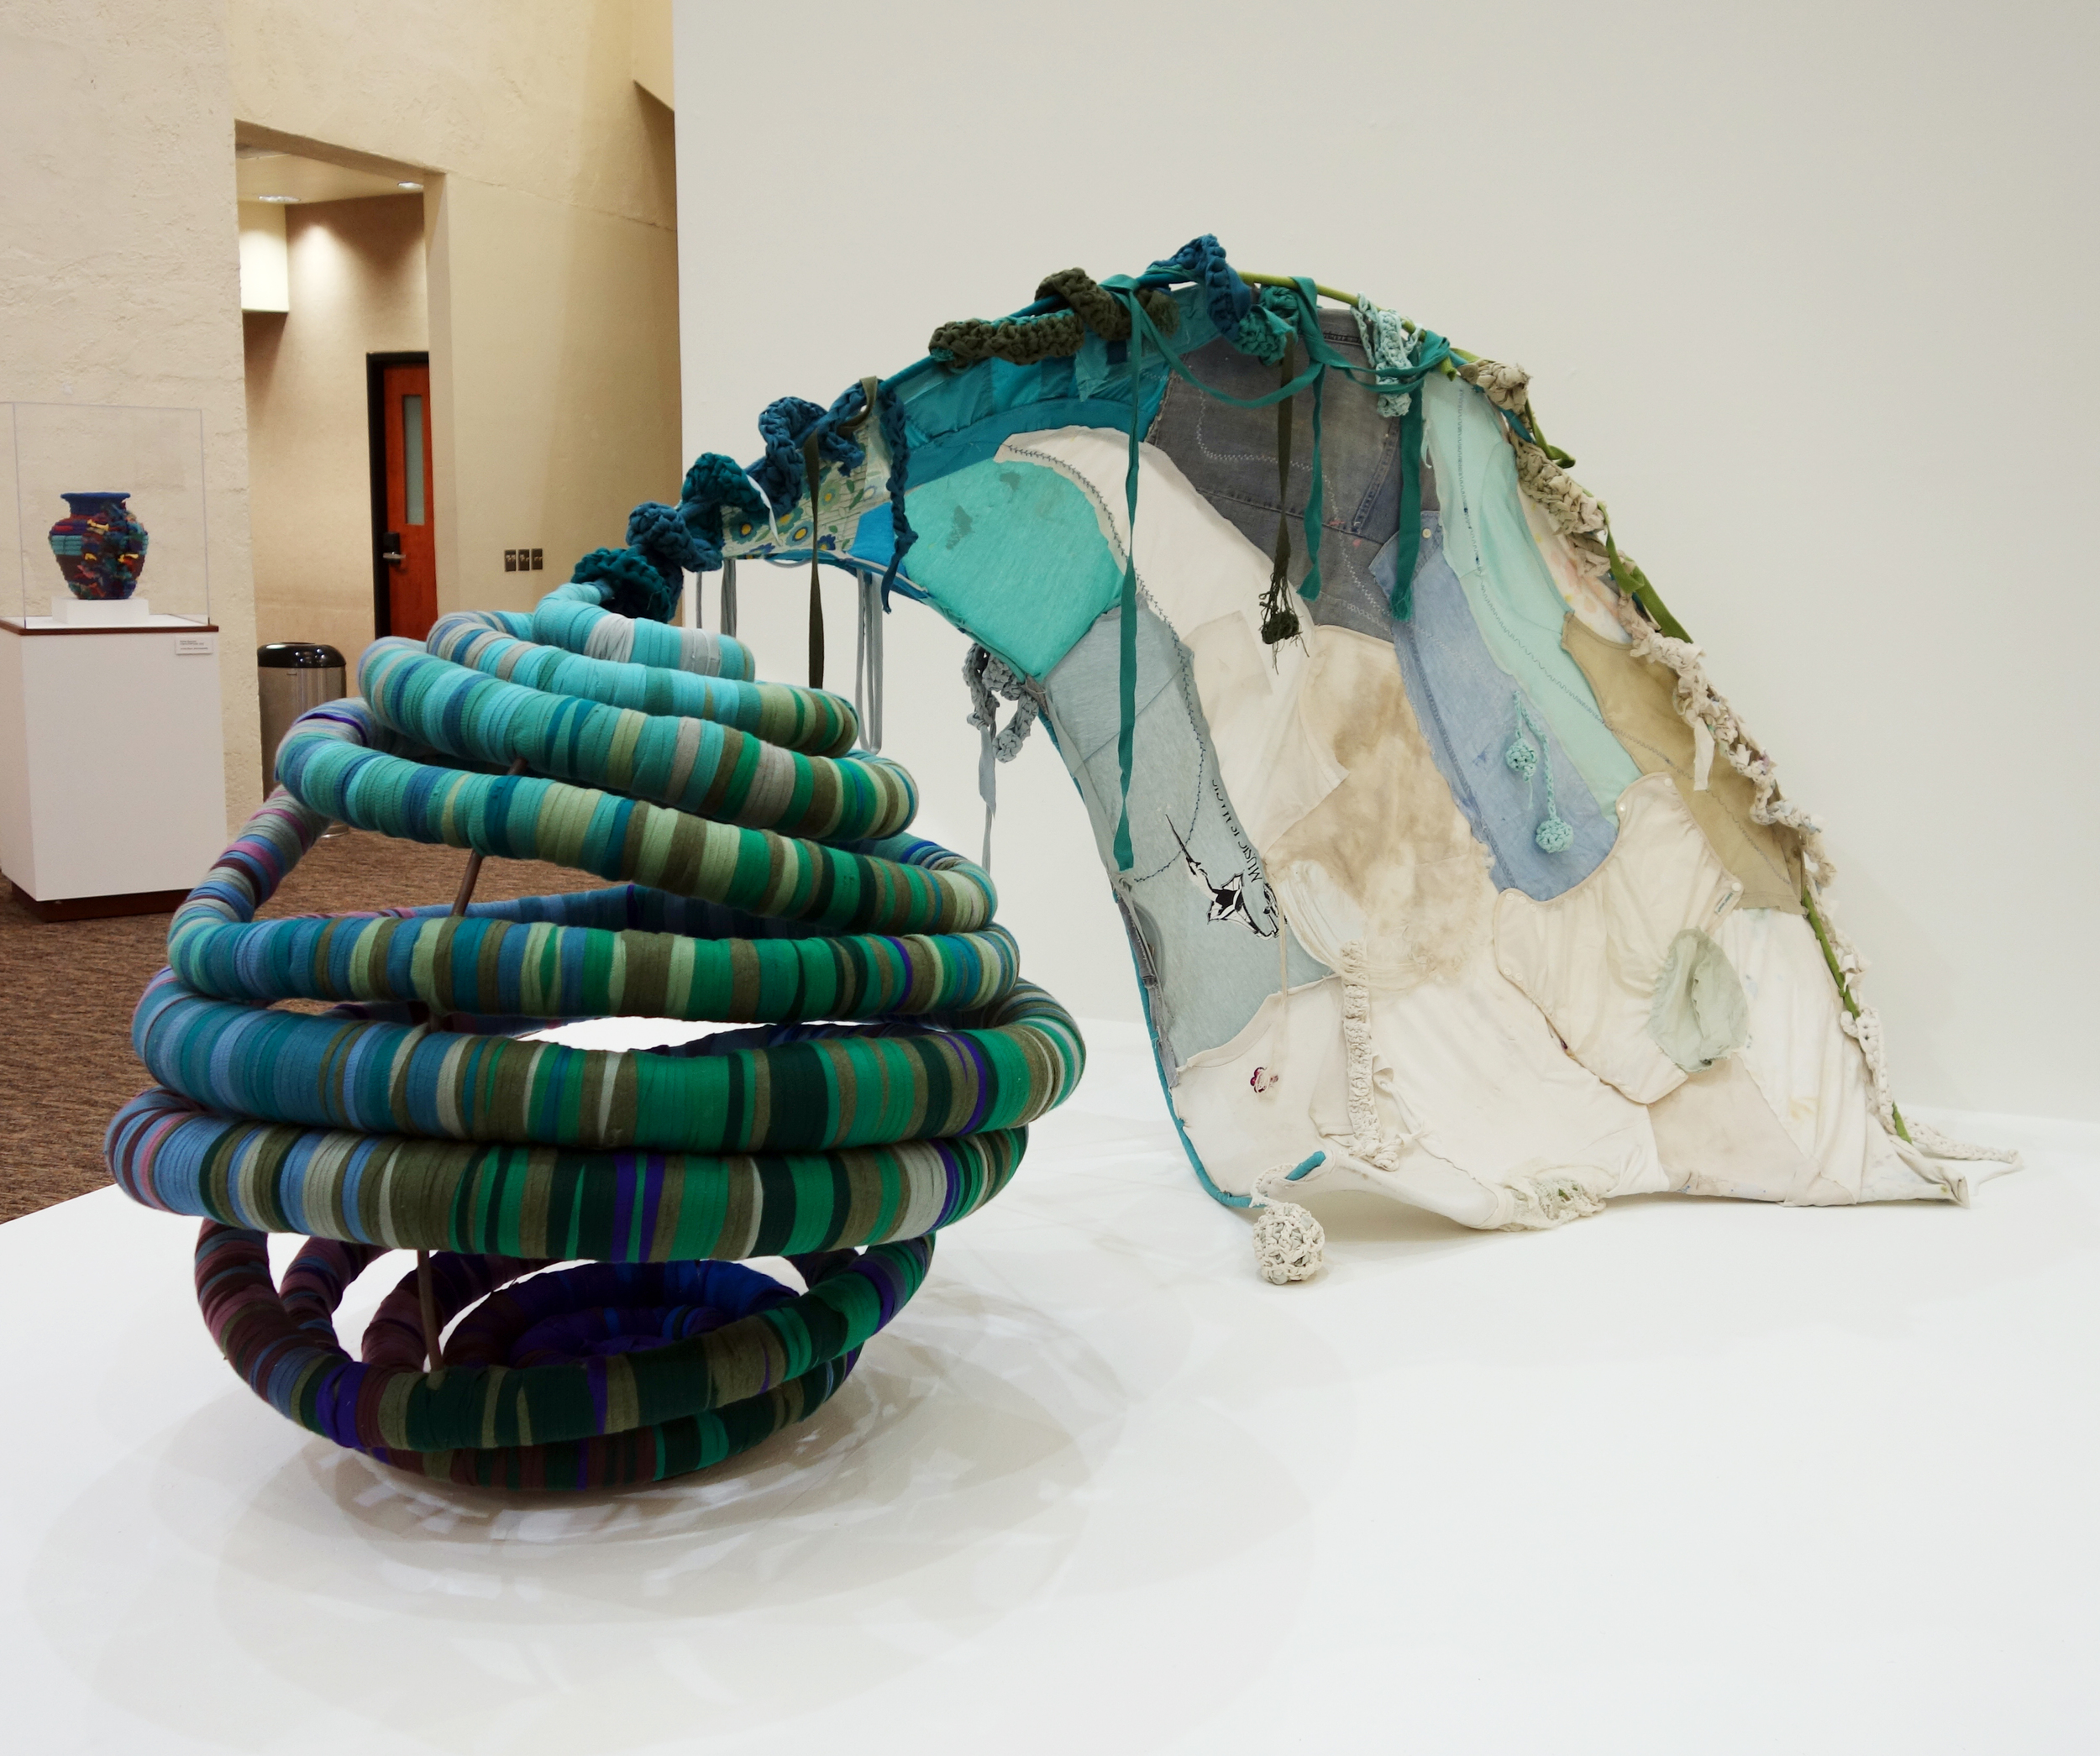 "she sailed in a boat who's wing was sometimes a tail   42 x 60 x 36""  Sunbrella®, pool noodles, steel rod, used clothes  Pictured here in   11 Miles of Color: Repurposing Spring Crossing    at the  Gallery@The Library , Scottsdale Civic Center, 2016"